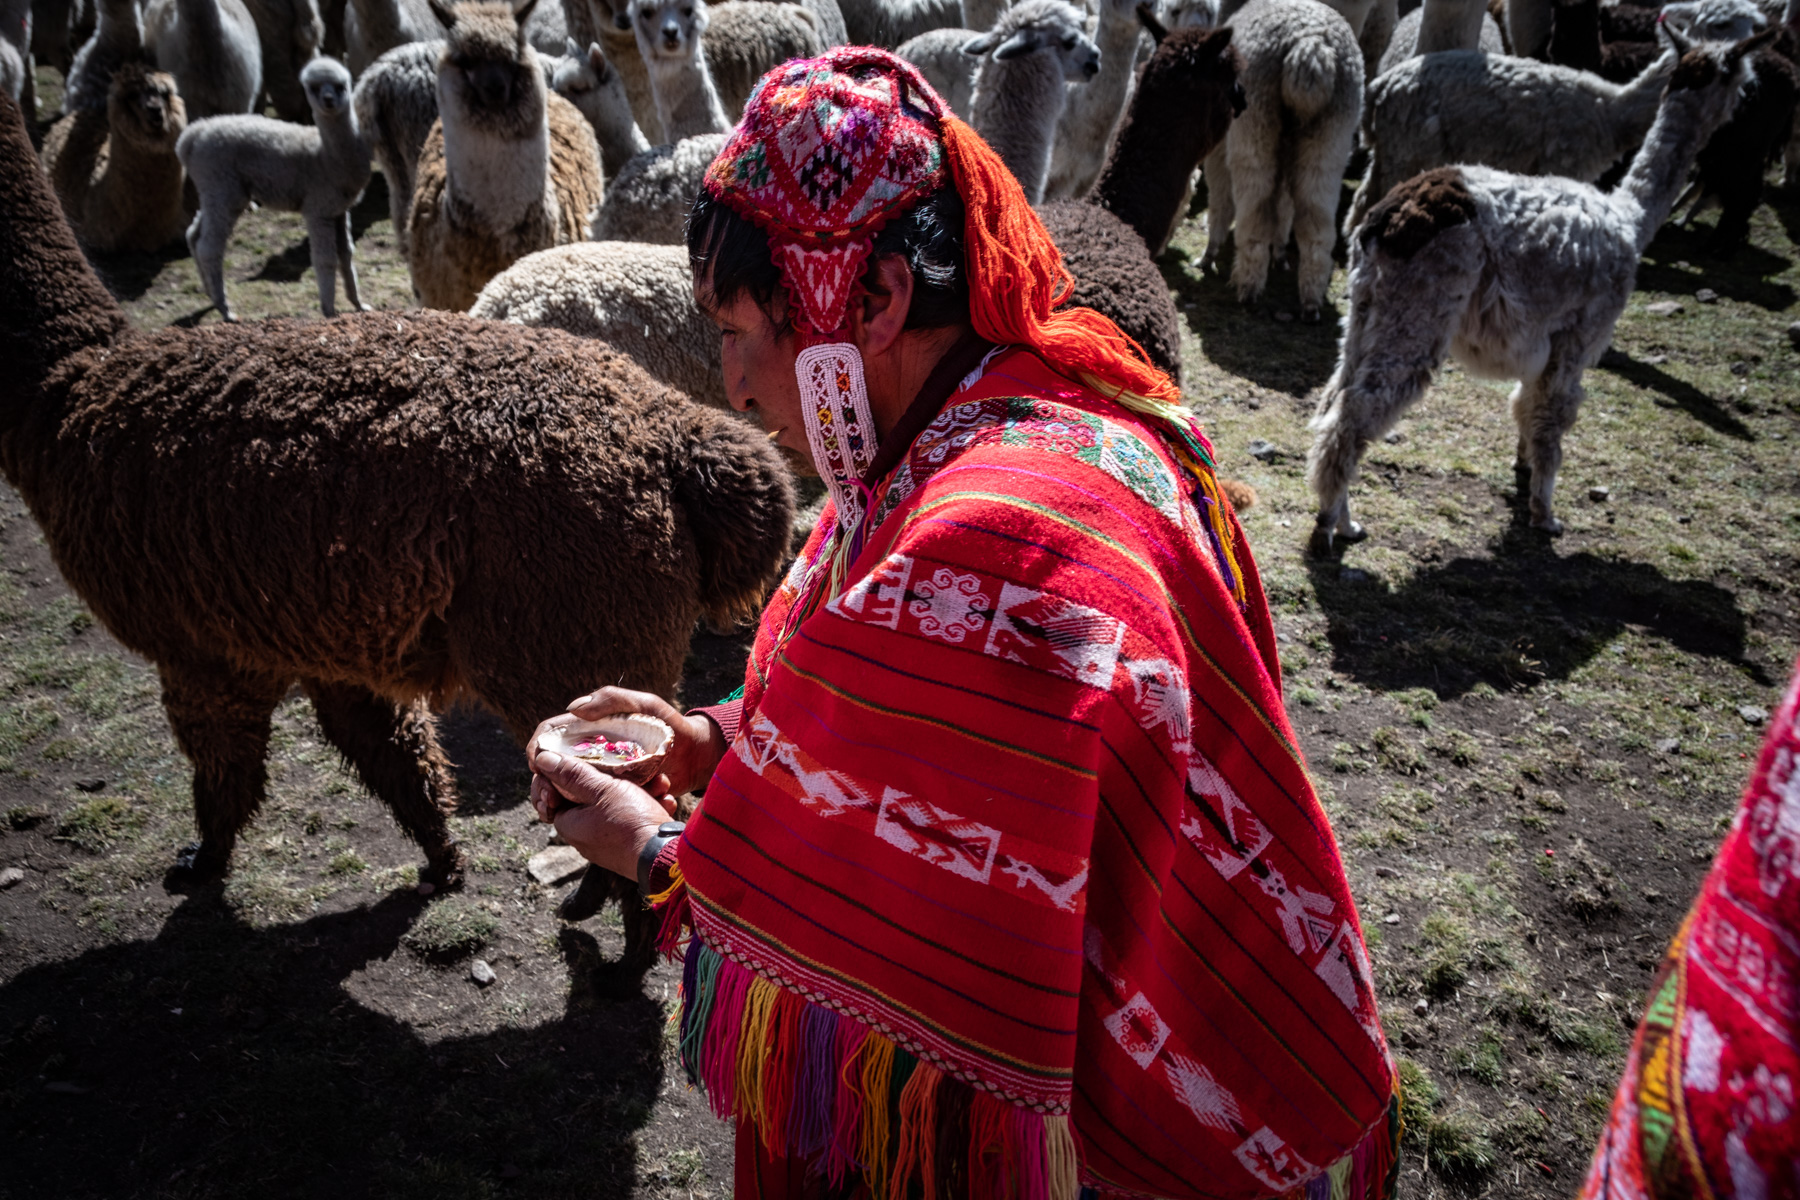 Quechuan mad in traditional dress with Alpacas in the background